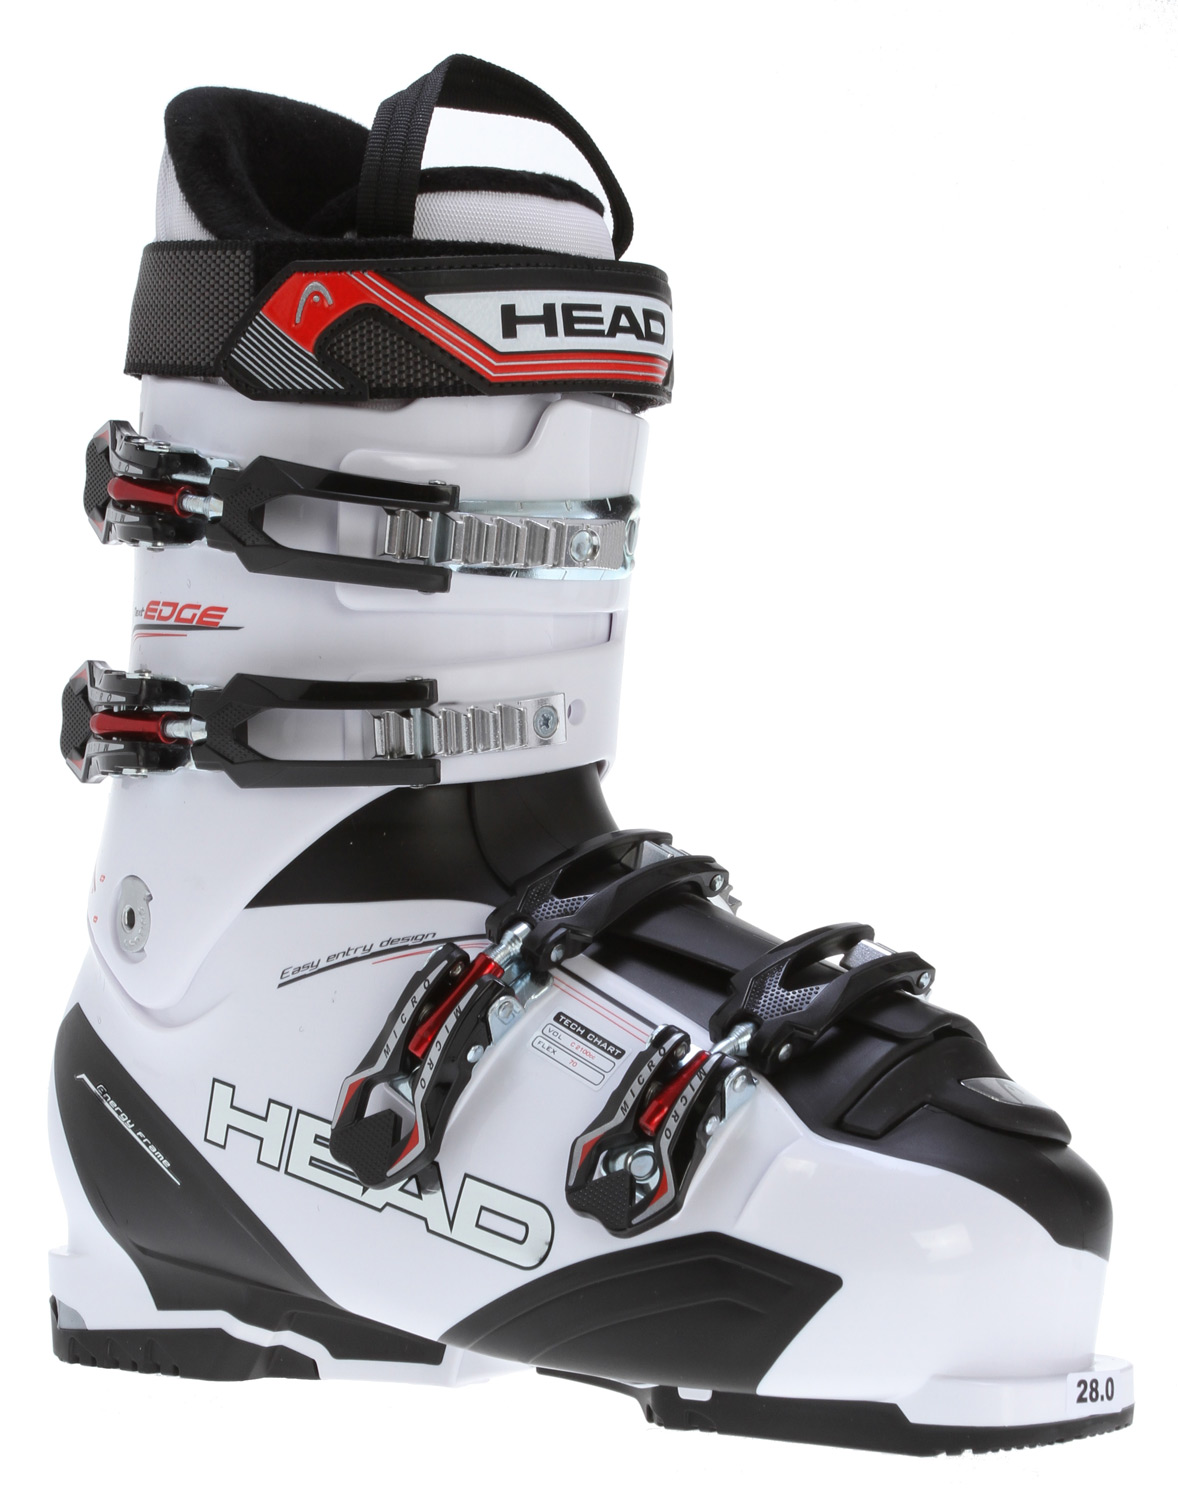 Ski Key Features of the Head Next Edge 70 Ski Boots White/Black: Level: Intermediate SL Shell Comfort Liner Sport Frame Footbed 35mm Velcro Strap Prepared for Heating System 4 Micro Adjustable Plastic Buckles 1 Super Macro Ratchet Tri-inj Energy Frame Easy Entry shell Design Double Canting Soft Walk Heel Flex Index: 70 - $199.95